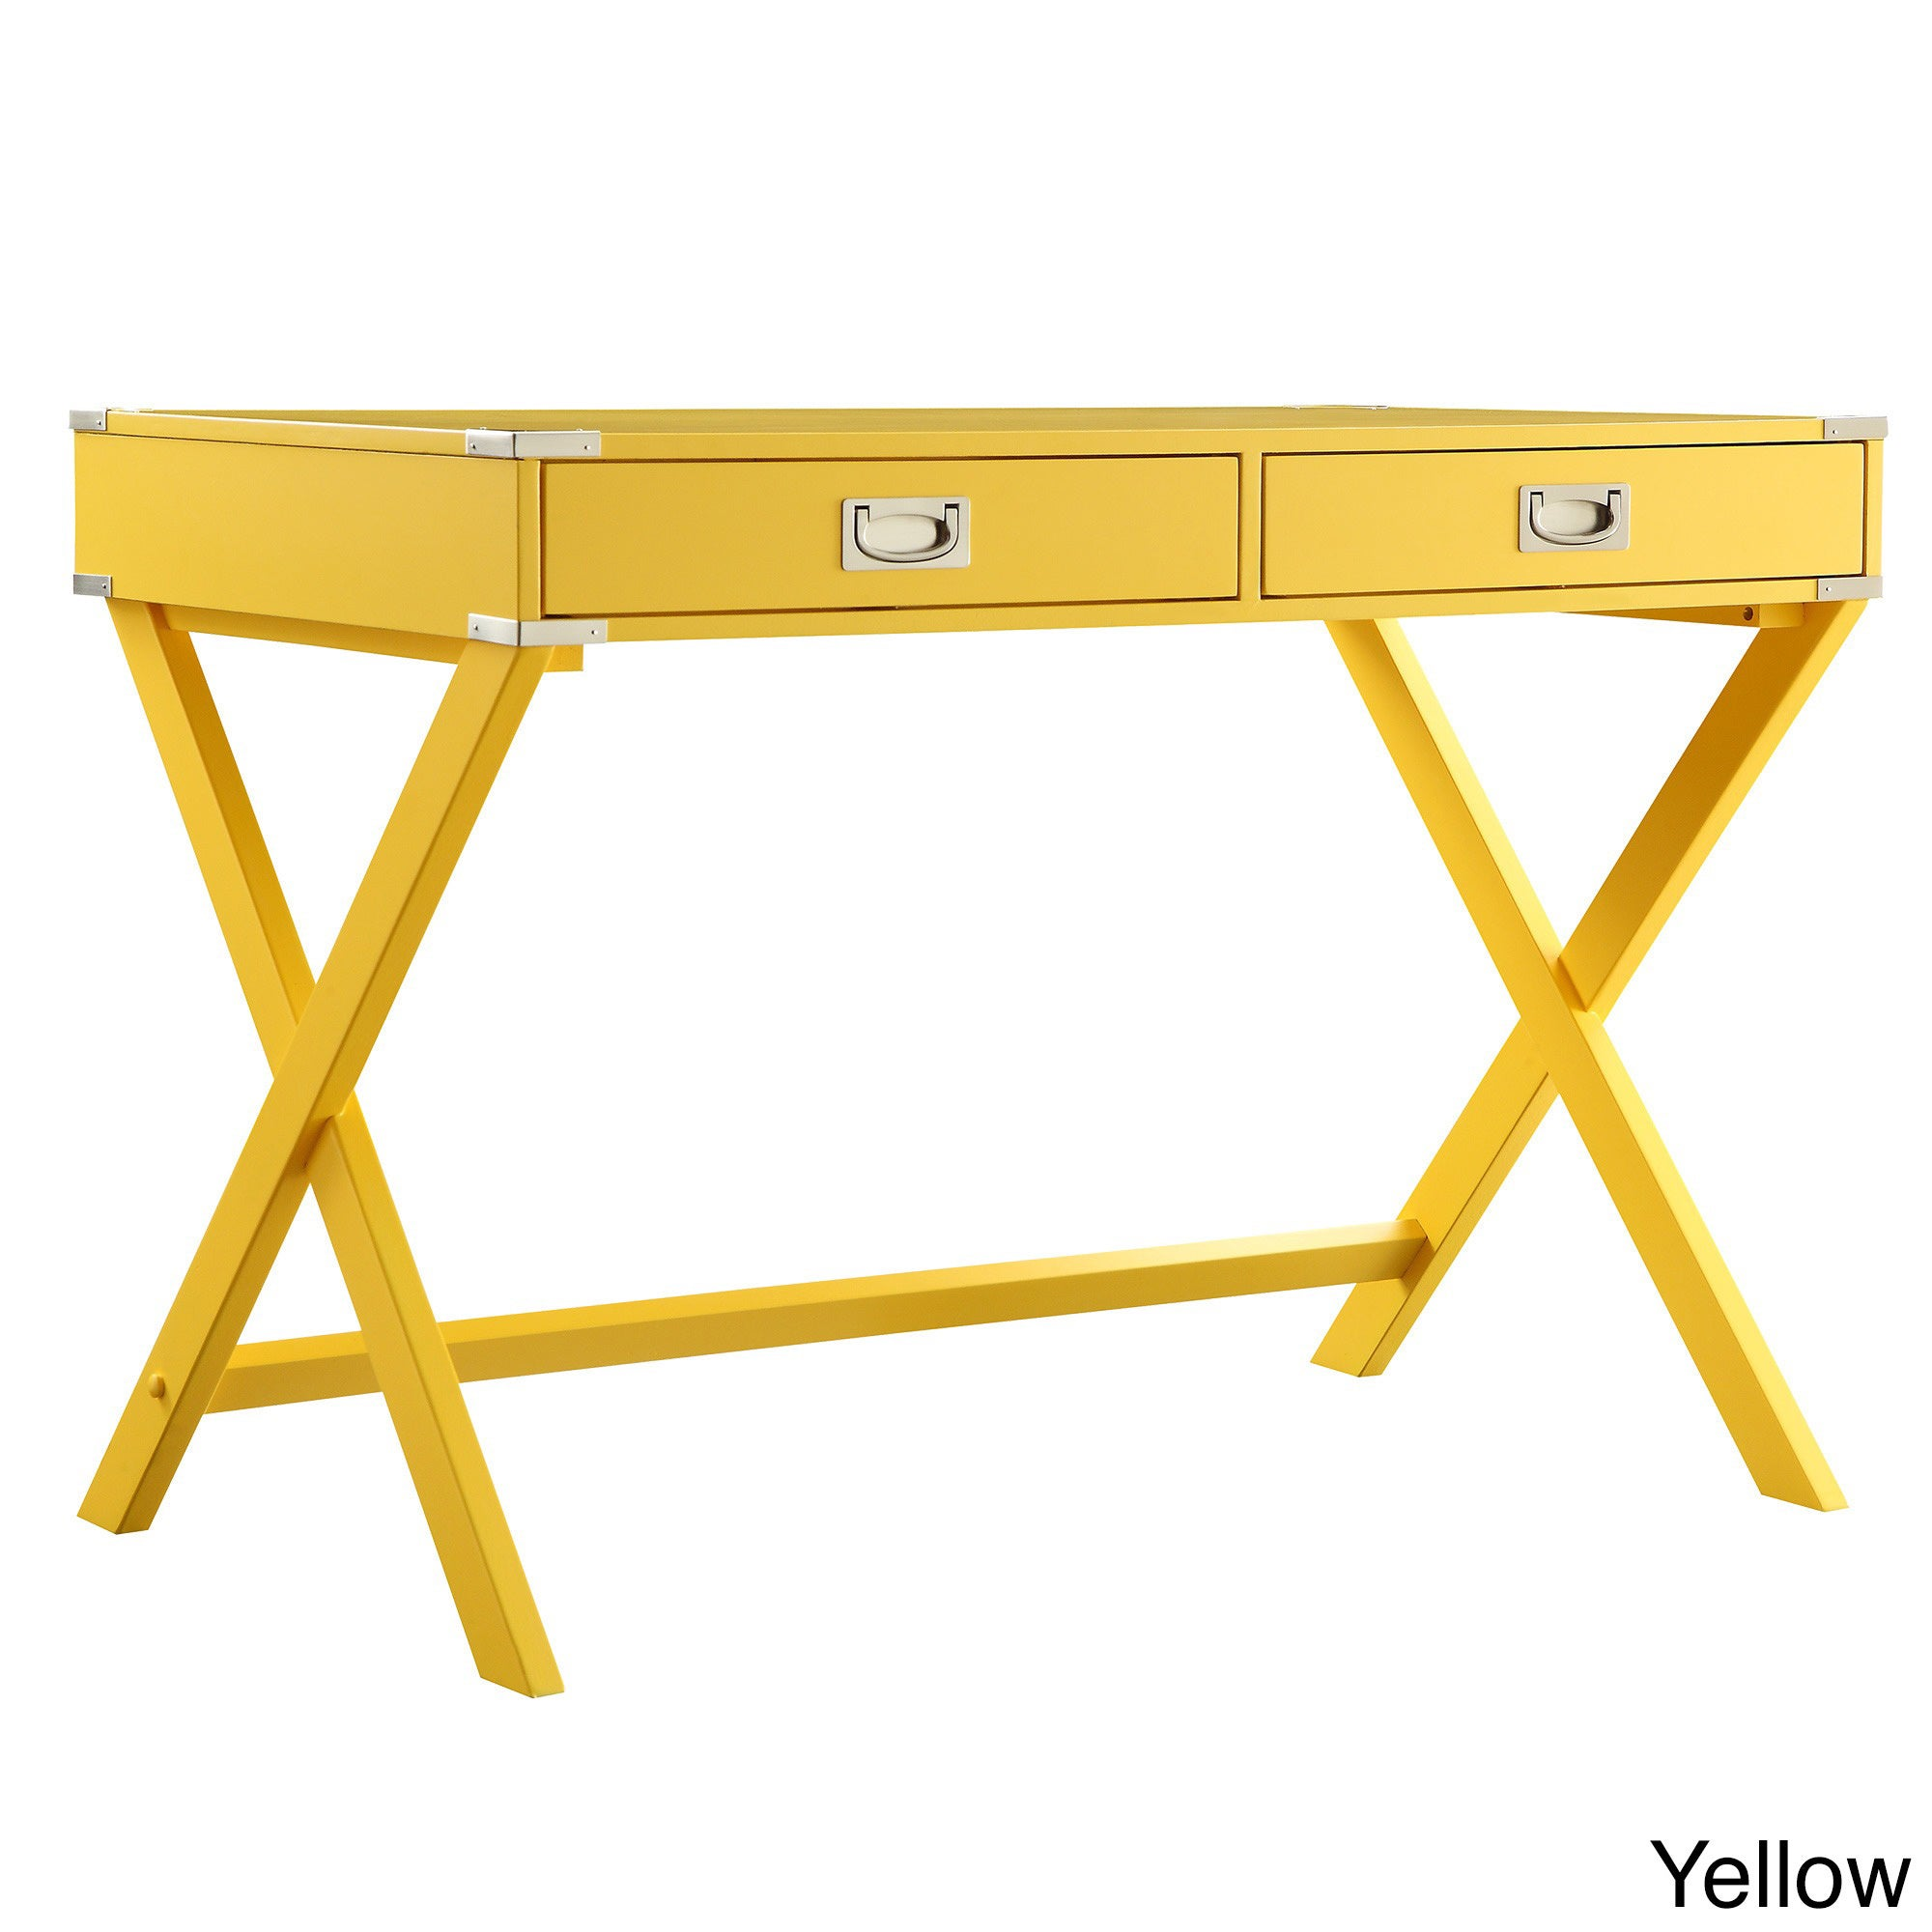 cracked chairs ice drop tables table leaf kitchen retro and s desk formica yellow pin